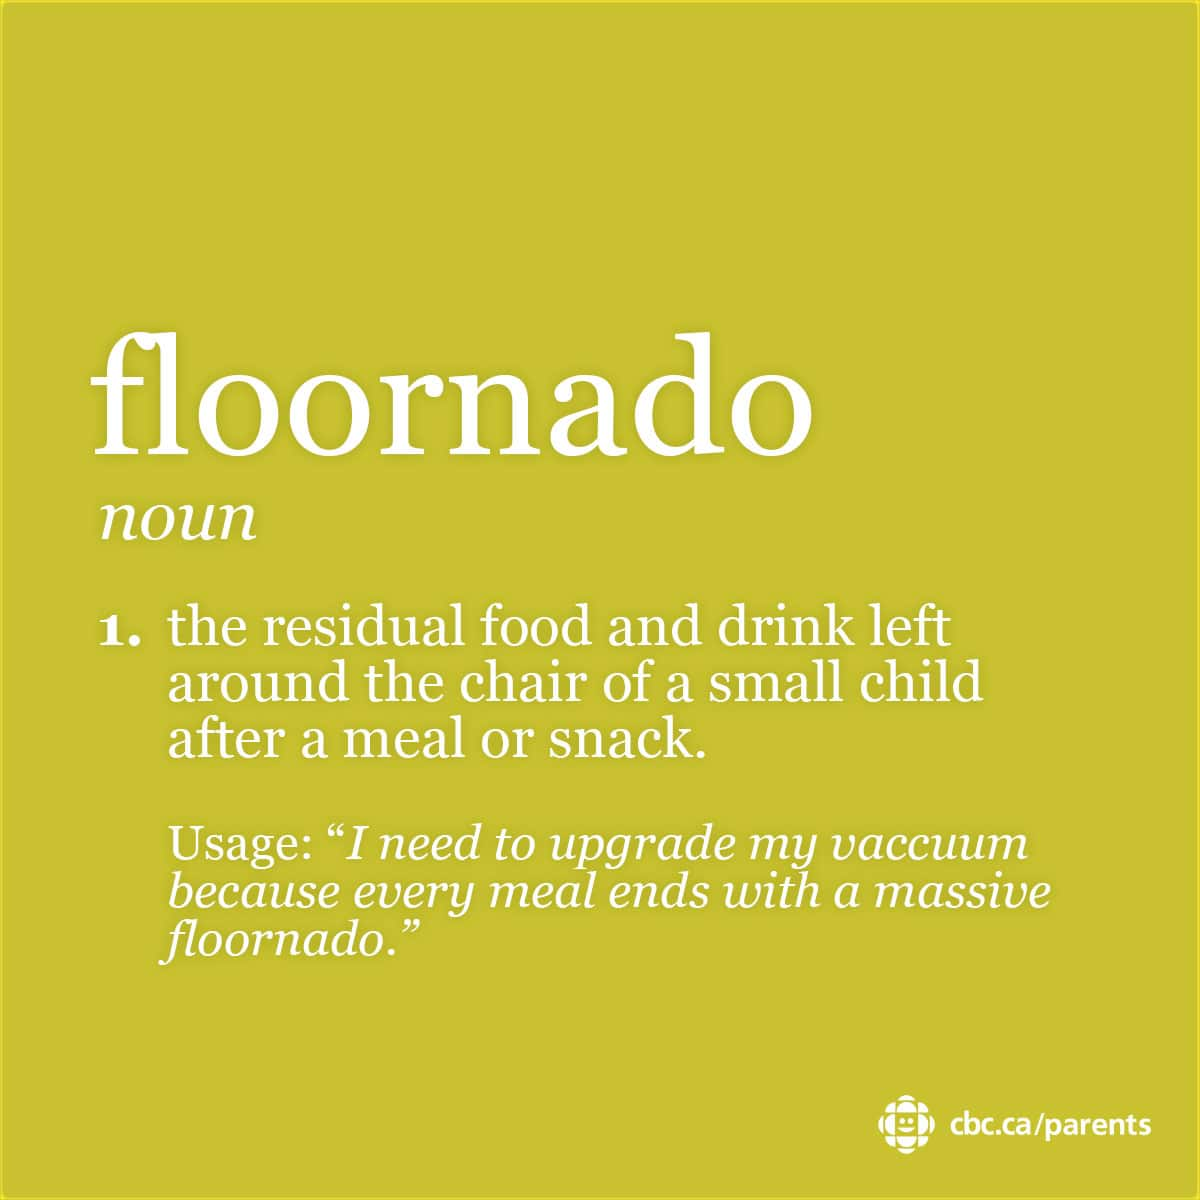 Floornado: the residual food and drink left around the chair of a small child after a meal or snack.